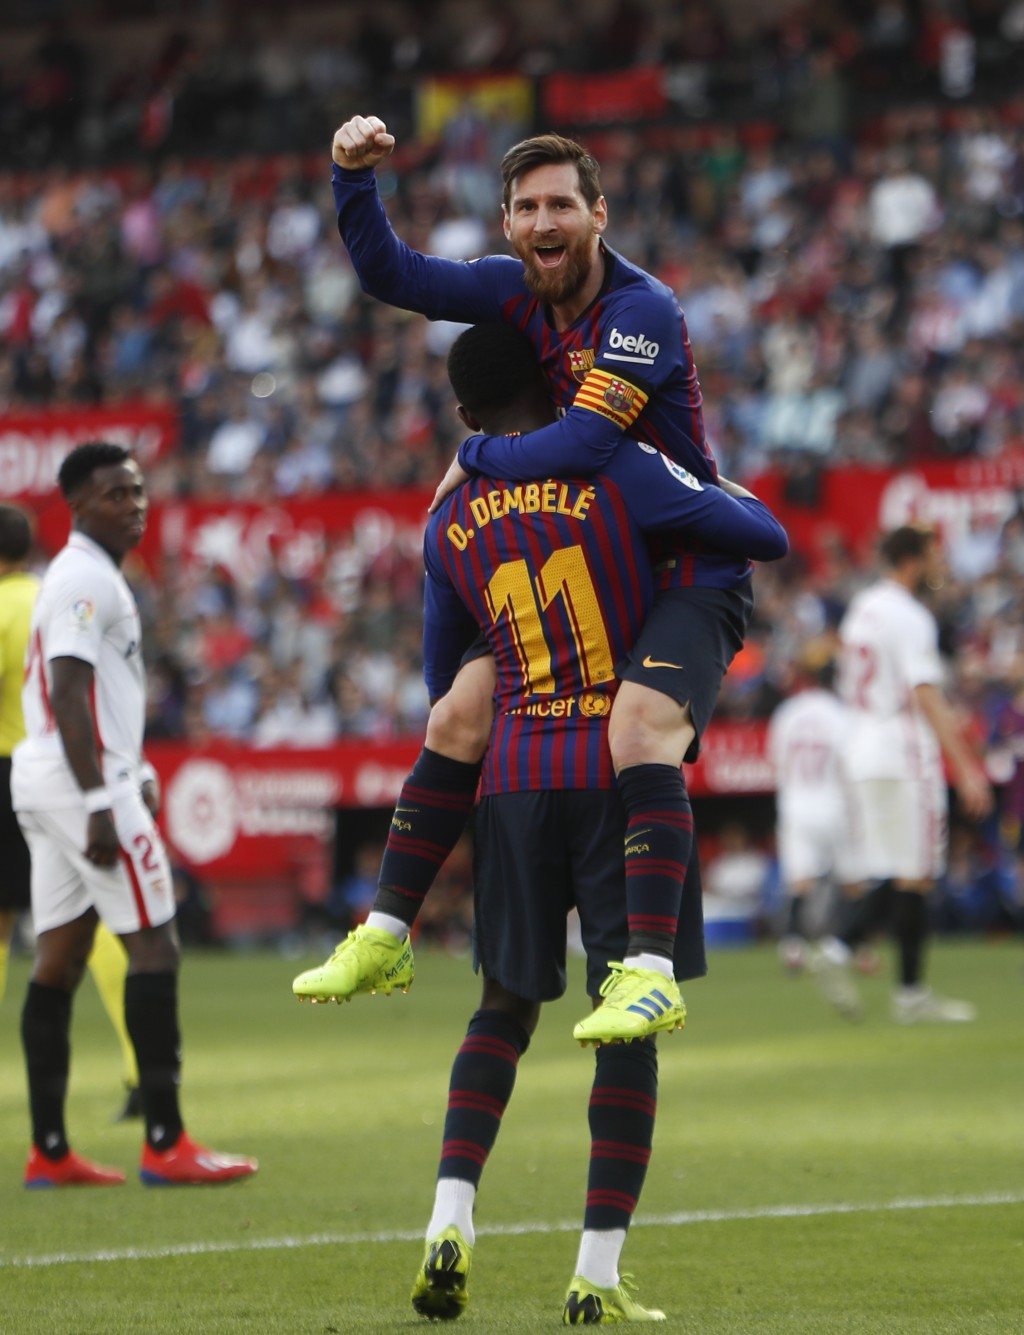 Barcelona forward Lionel Messi with his teammate Ousmane Dembele celebrate after scoring his side's second goal during La Liga soccer match between Se...